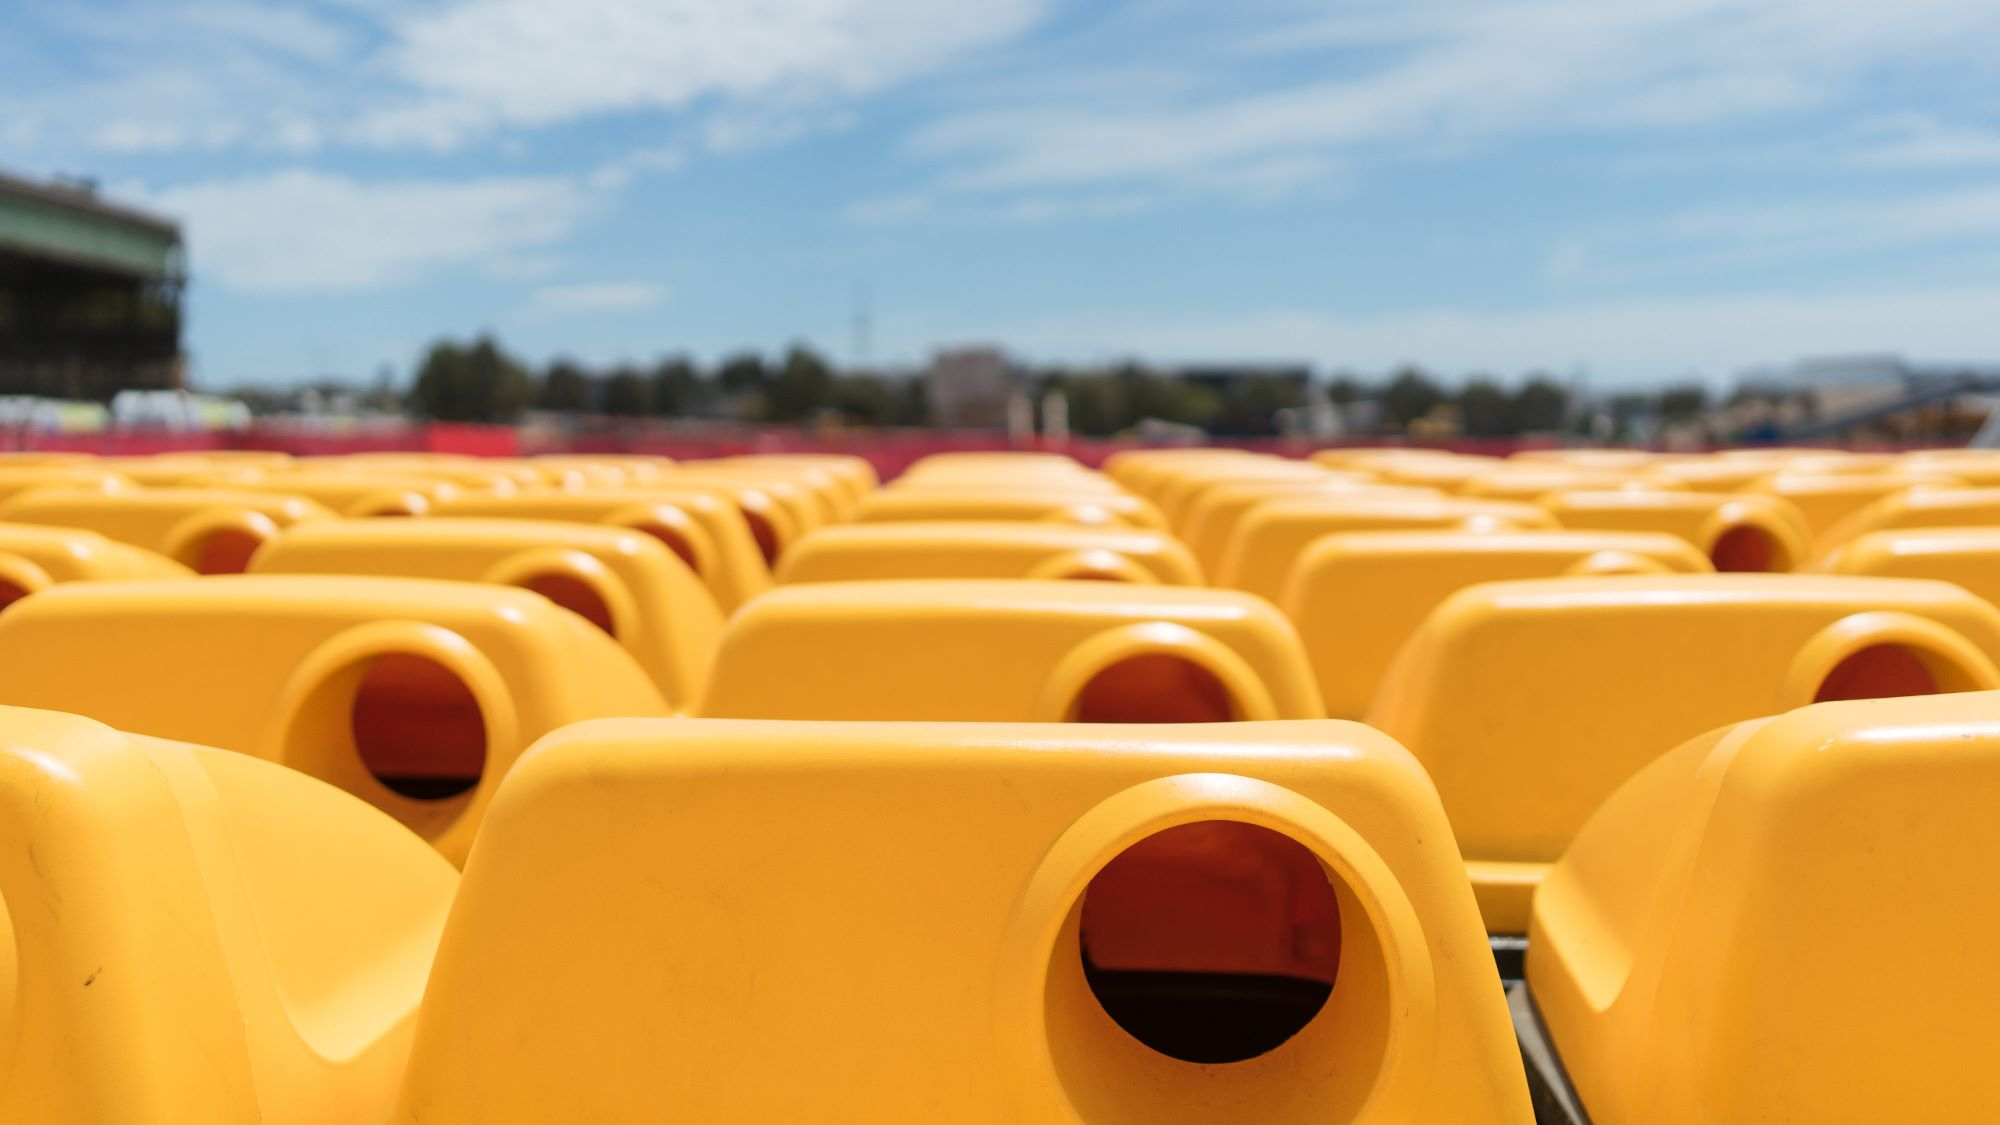 SUEZ bins and containers header image. Image showing close up of rows of yellow lidded recycling bins in a staging yard.